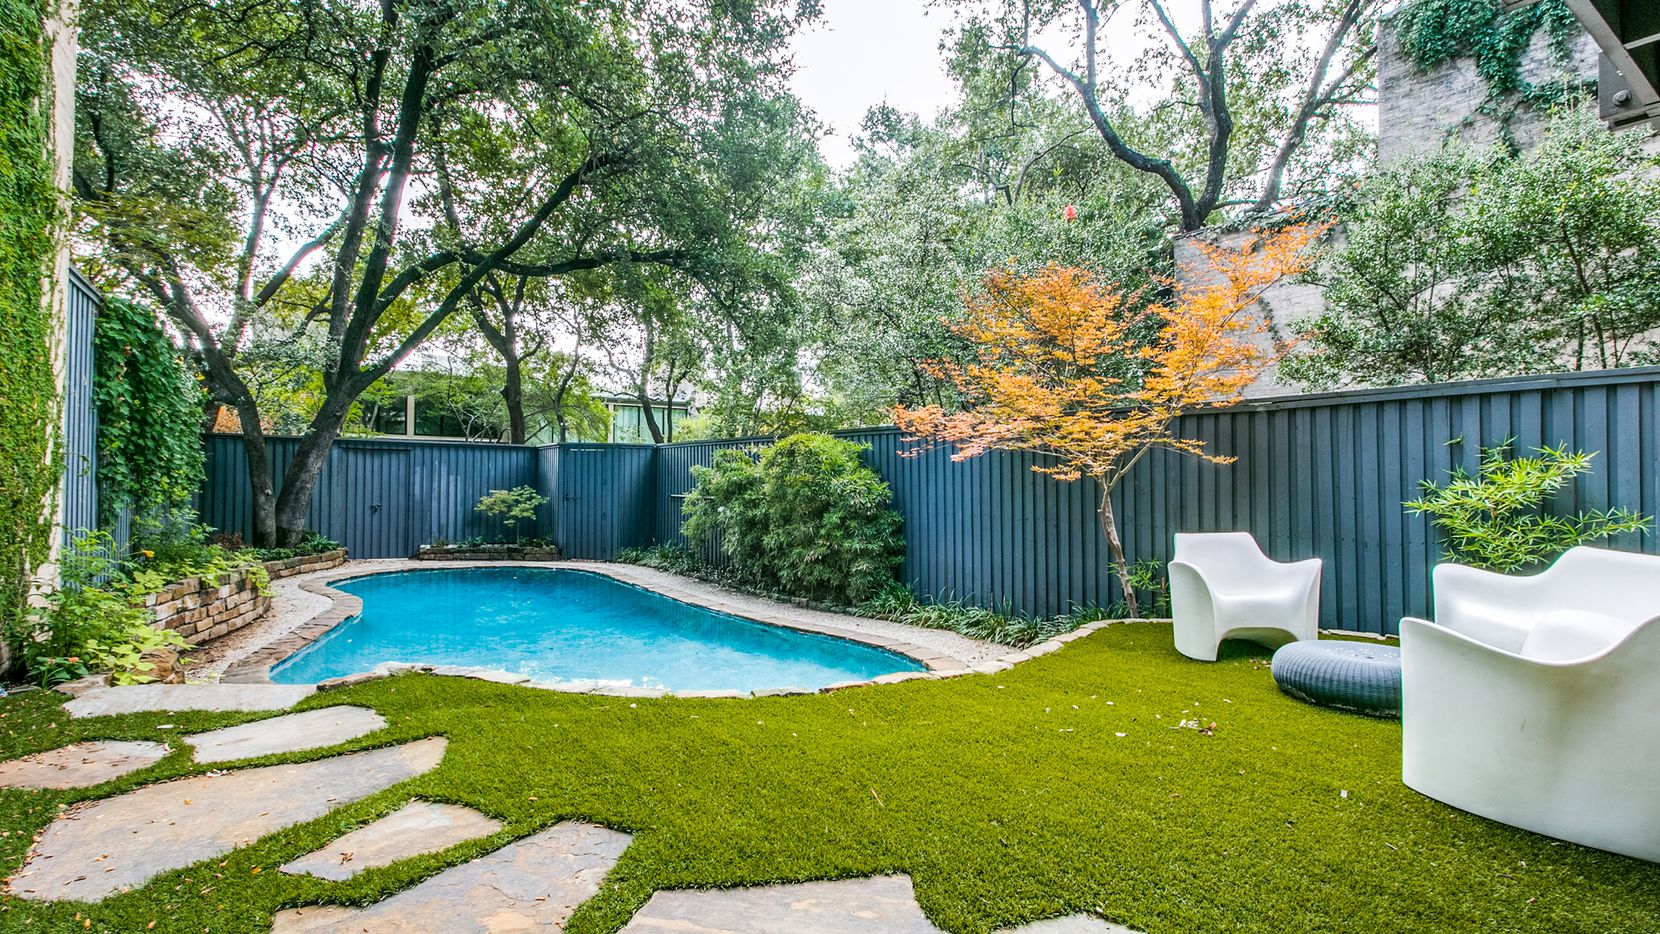 The Frank Welch-designed townhome at 4024 Buena Vista St. offers a tri-level floor plan, a pool and proximity to the Katy Trail.